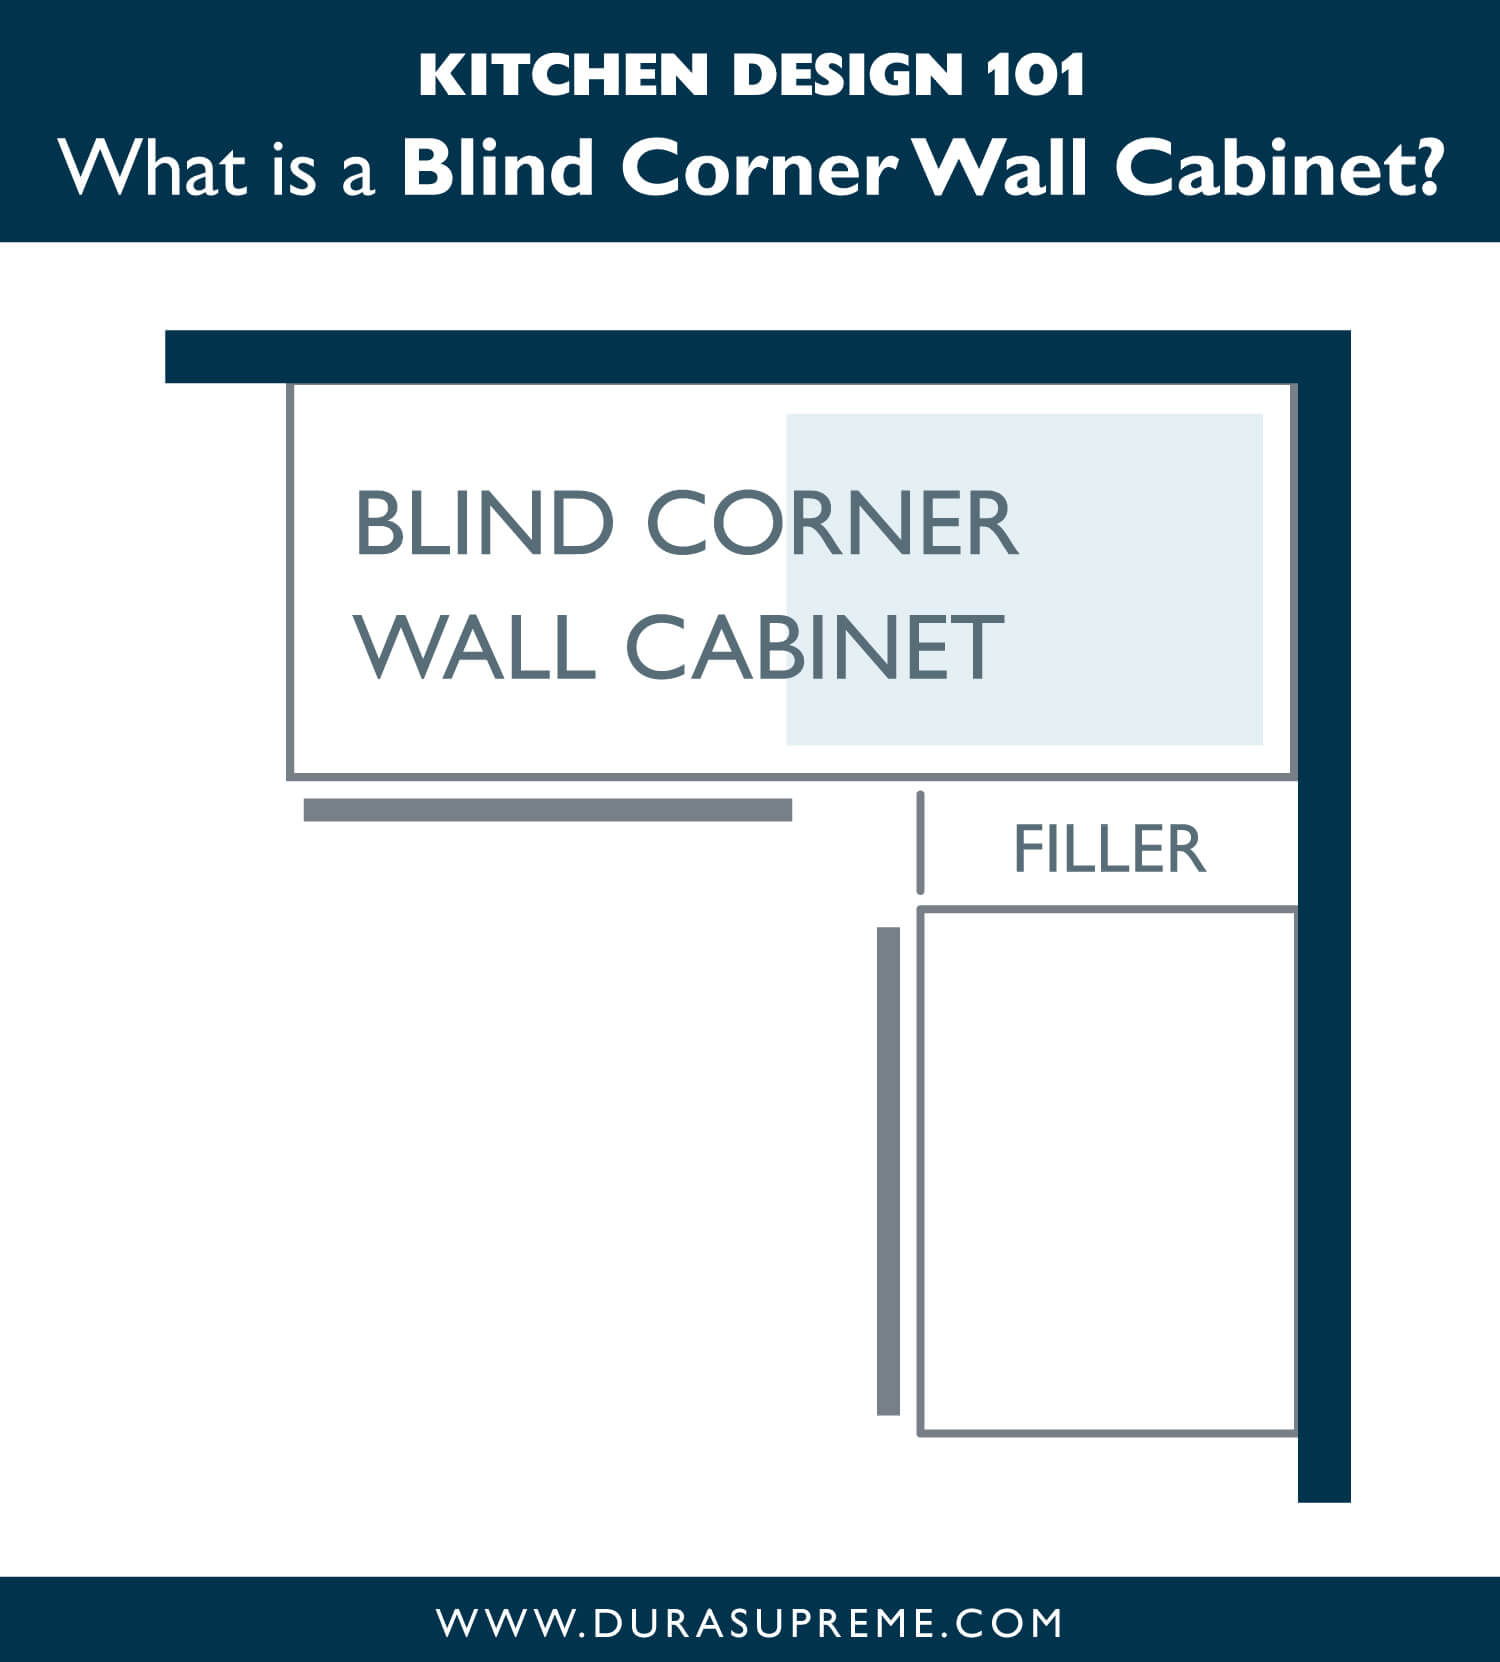 Kitchen Design 101: What is a Blind Corner Wall Cabinet? How to Select your kitchen cabinets.